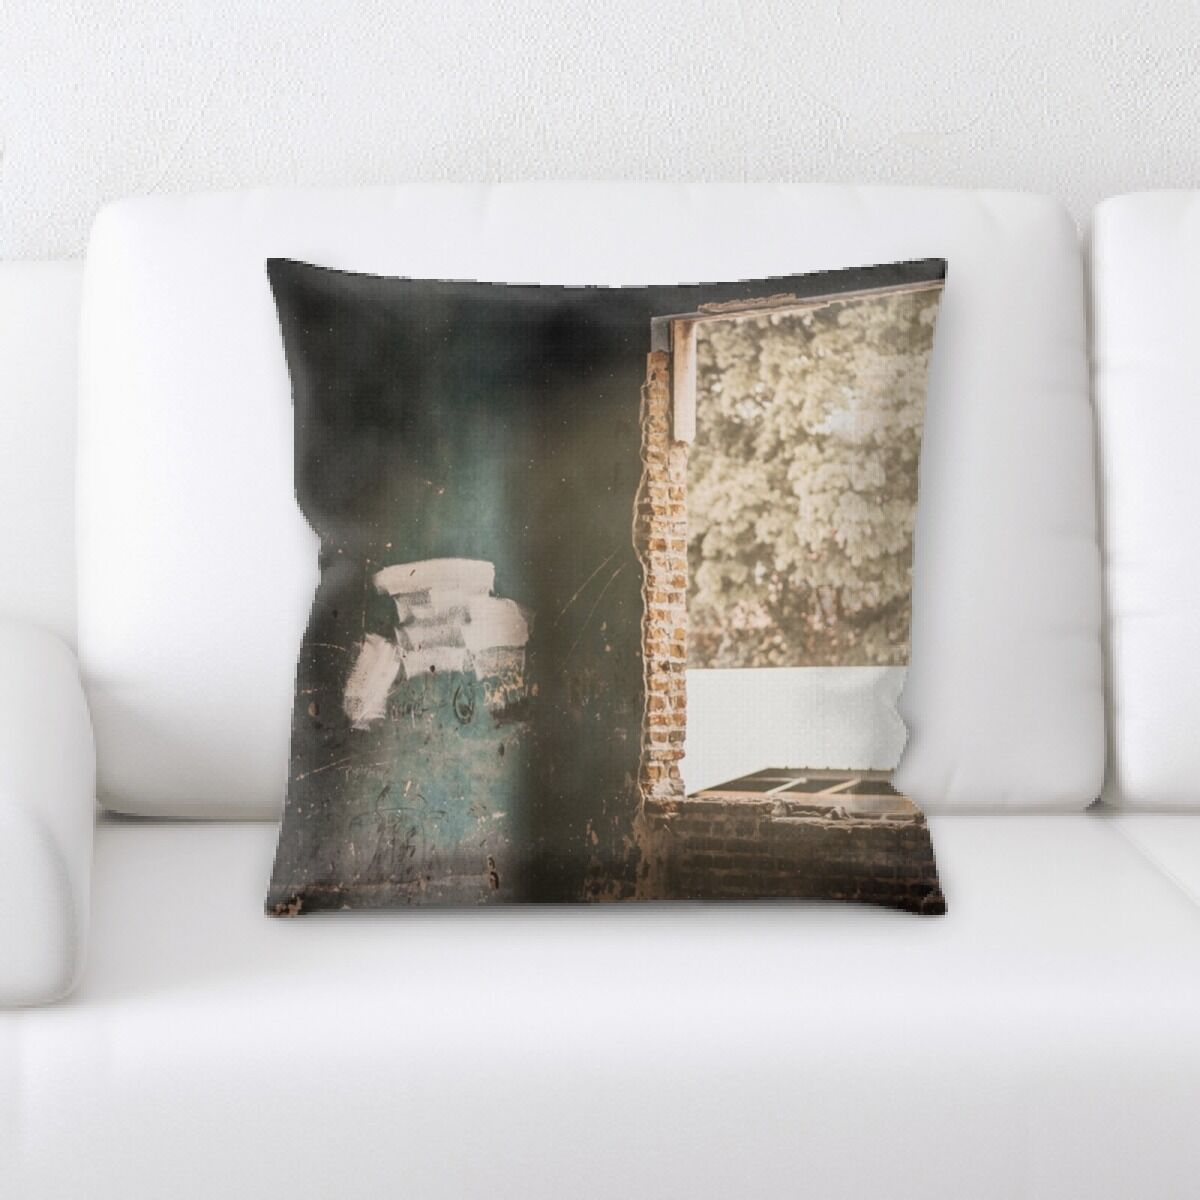 Lower Old and Abandoned (13) Throw Pillow